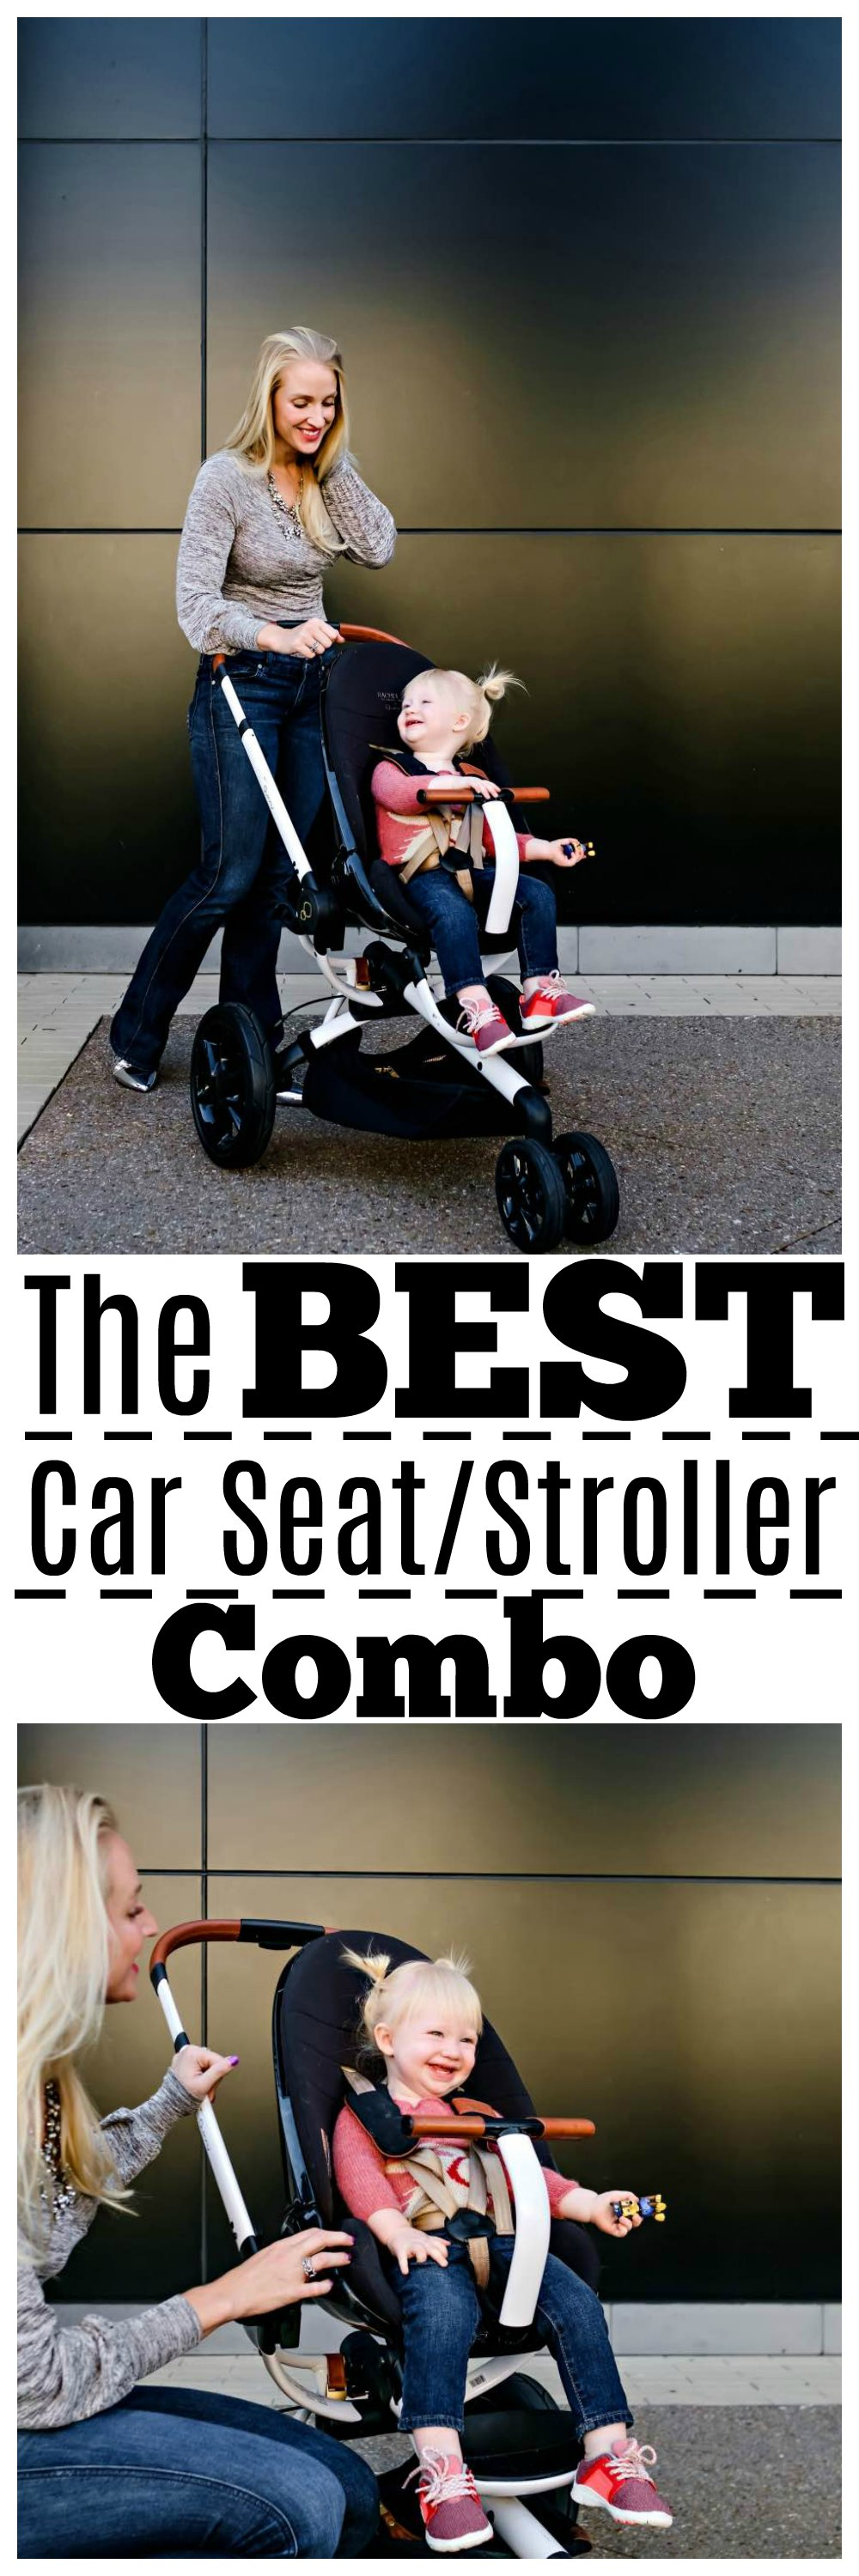 the best car seat stroller combo - Maxi Cosi Rachel Zoe Collection by Atlanta mom blogger Happily Hughes